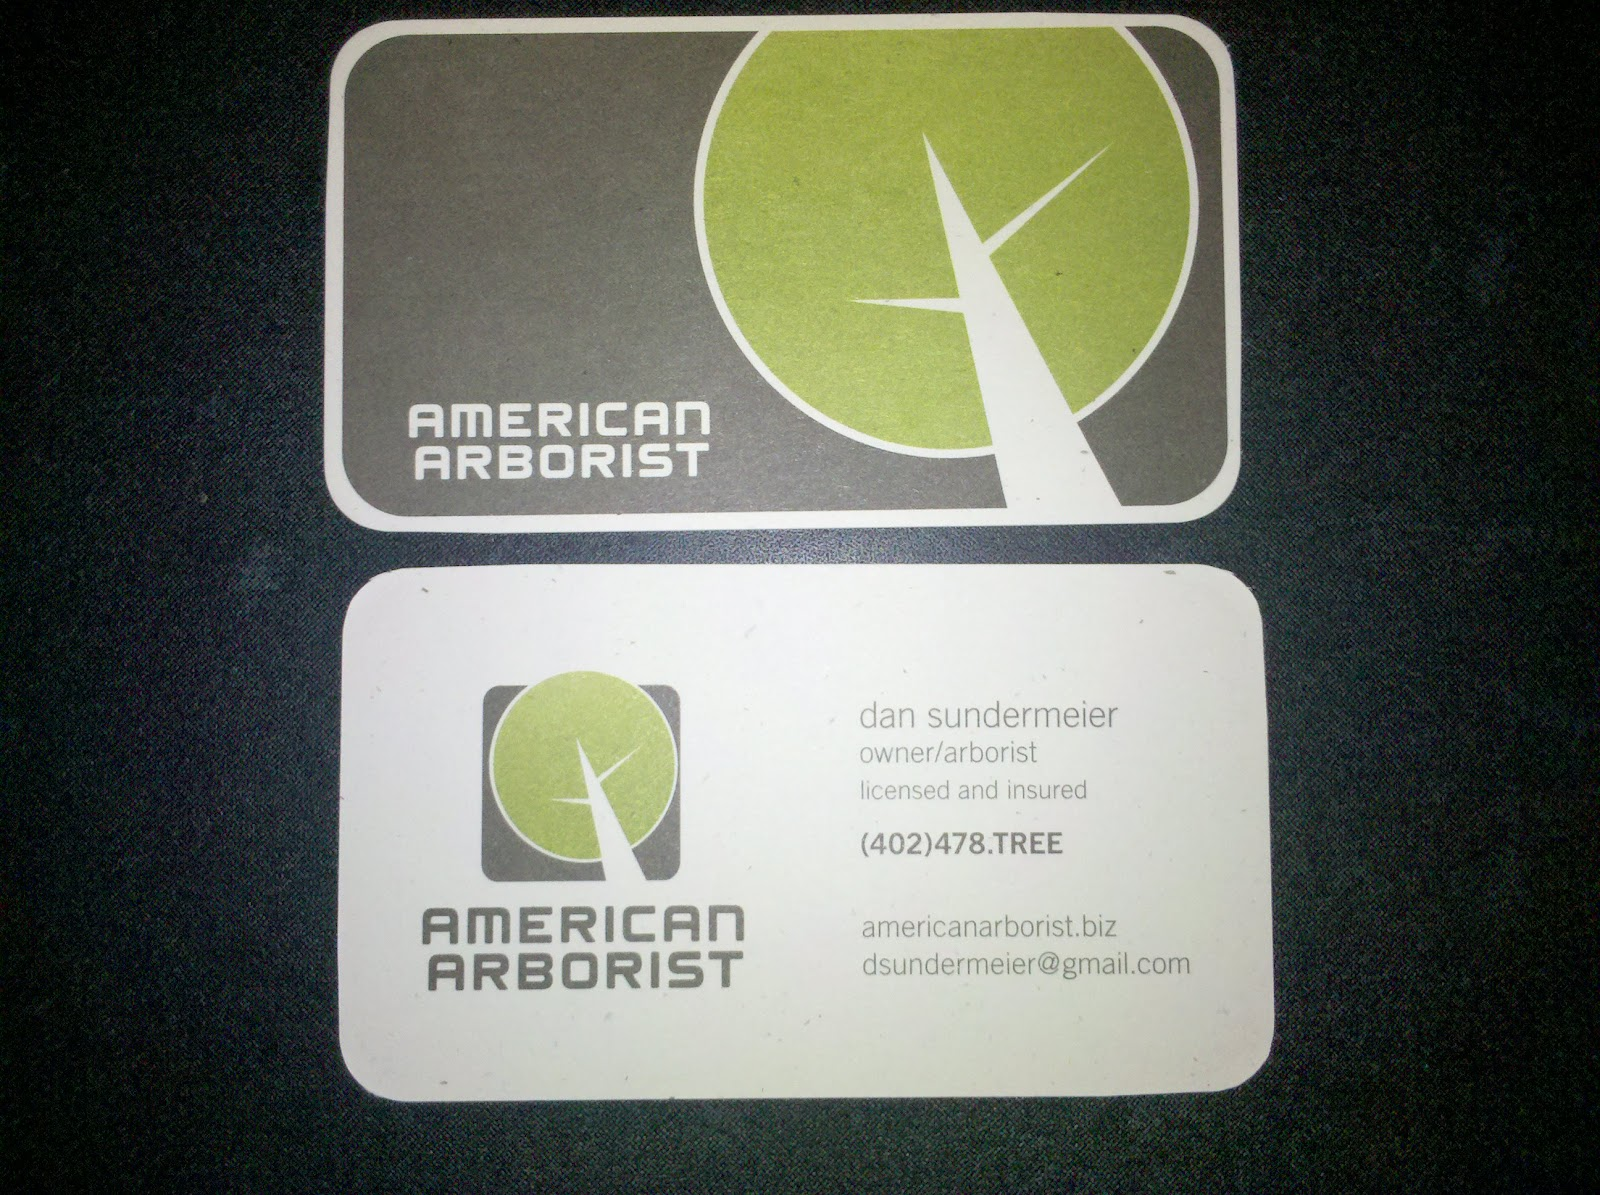 American Arborist: New Business Cards